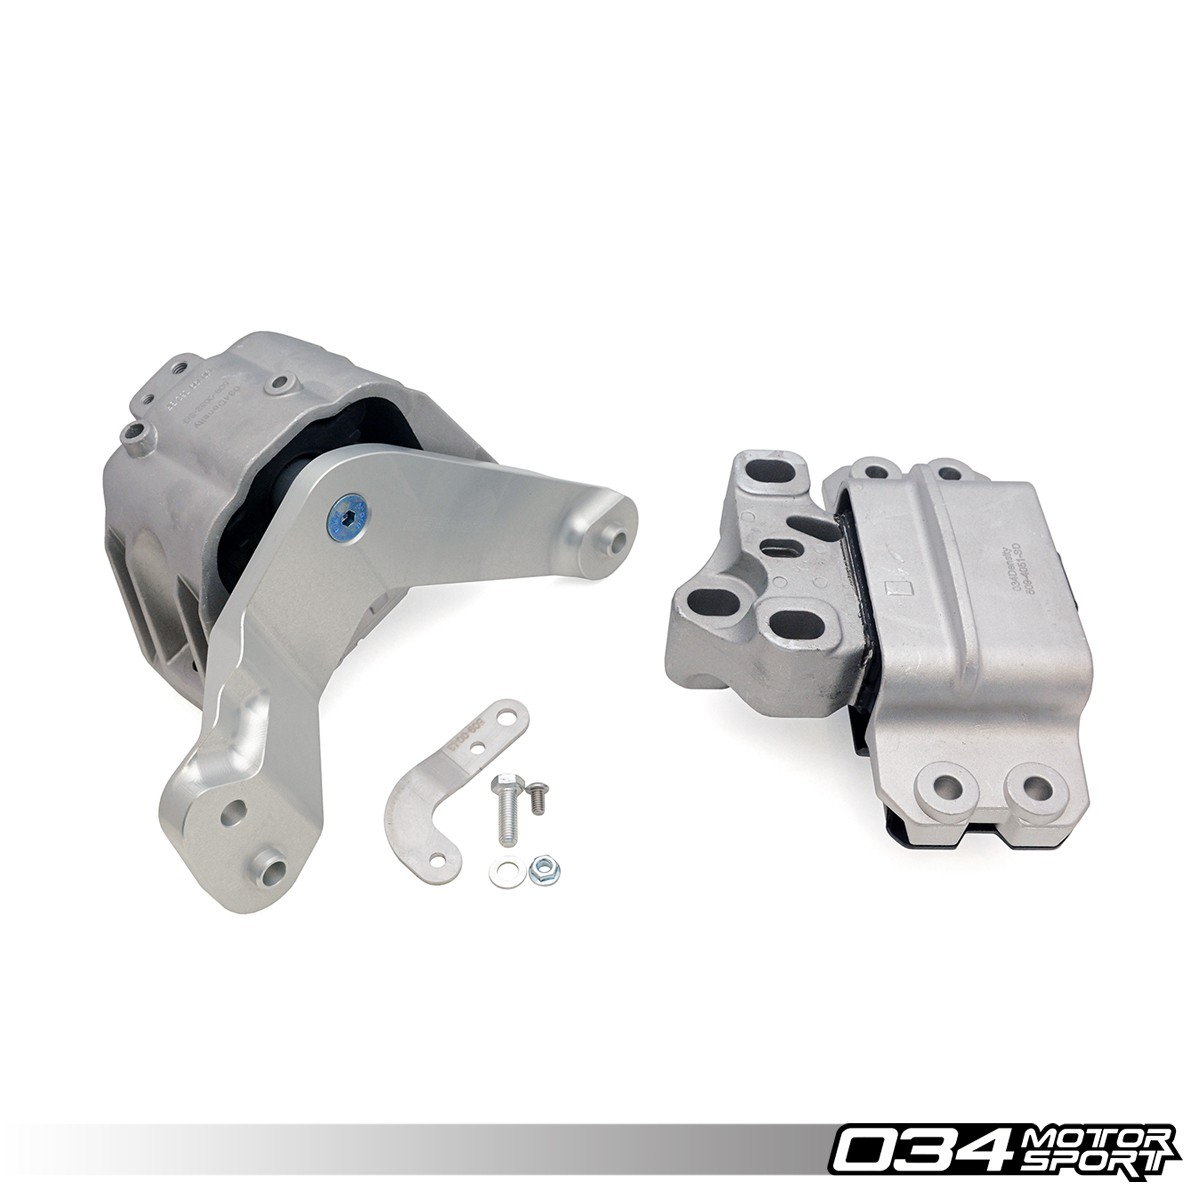 Performance Engine/Transmission Mount Pair, 8J Audi TT RS 2.5 TFSI, 6-Speed Manual, Street Density | 034-509-5019-SD